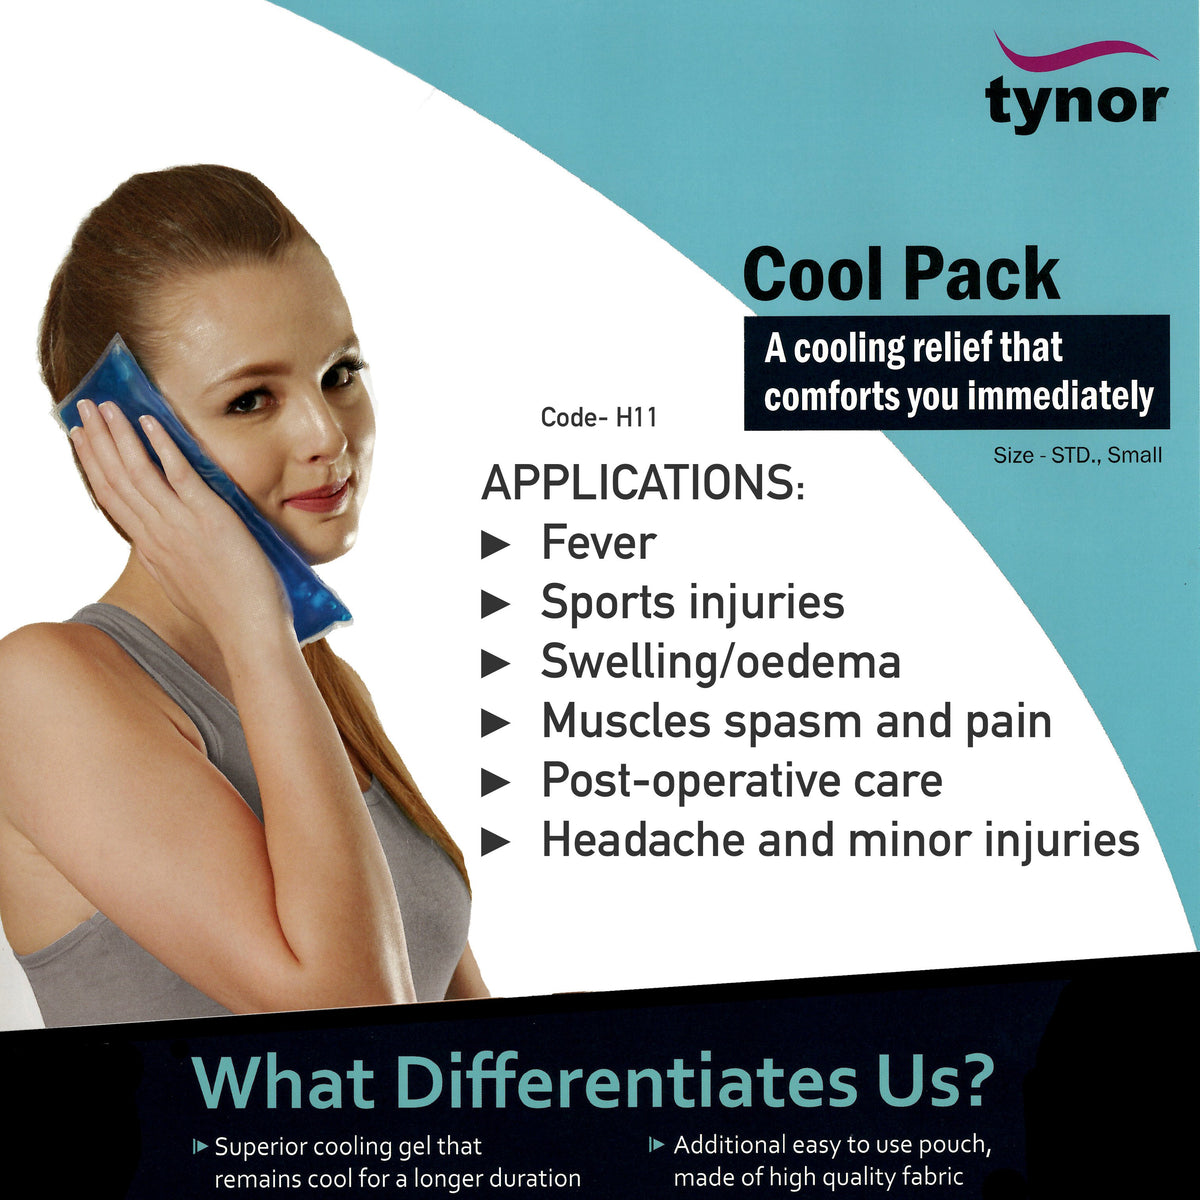 Tynor Australia Cool Pack Physio Supplies Orthopedic aids Physio Supports Australia